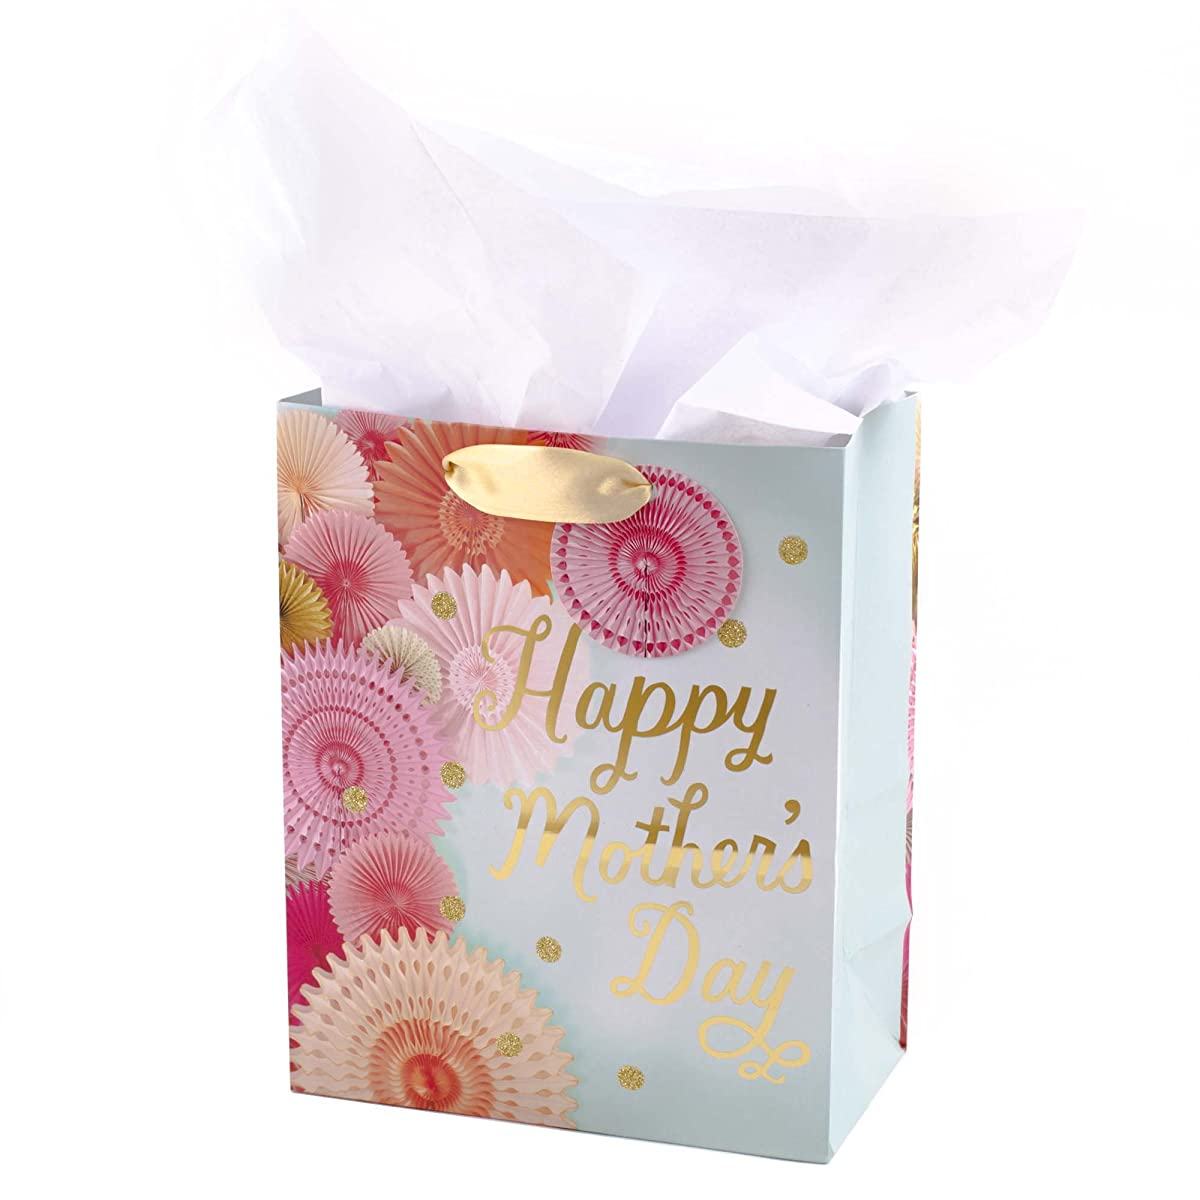 Hallmark Medium Mothers Day Gift Bag with Tissue Paper (Light Blue with Flowers)